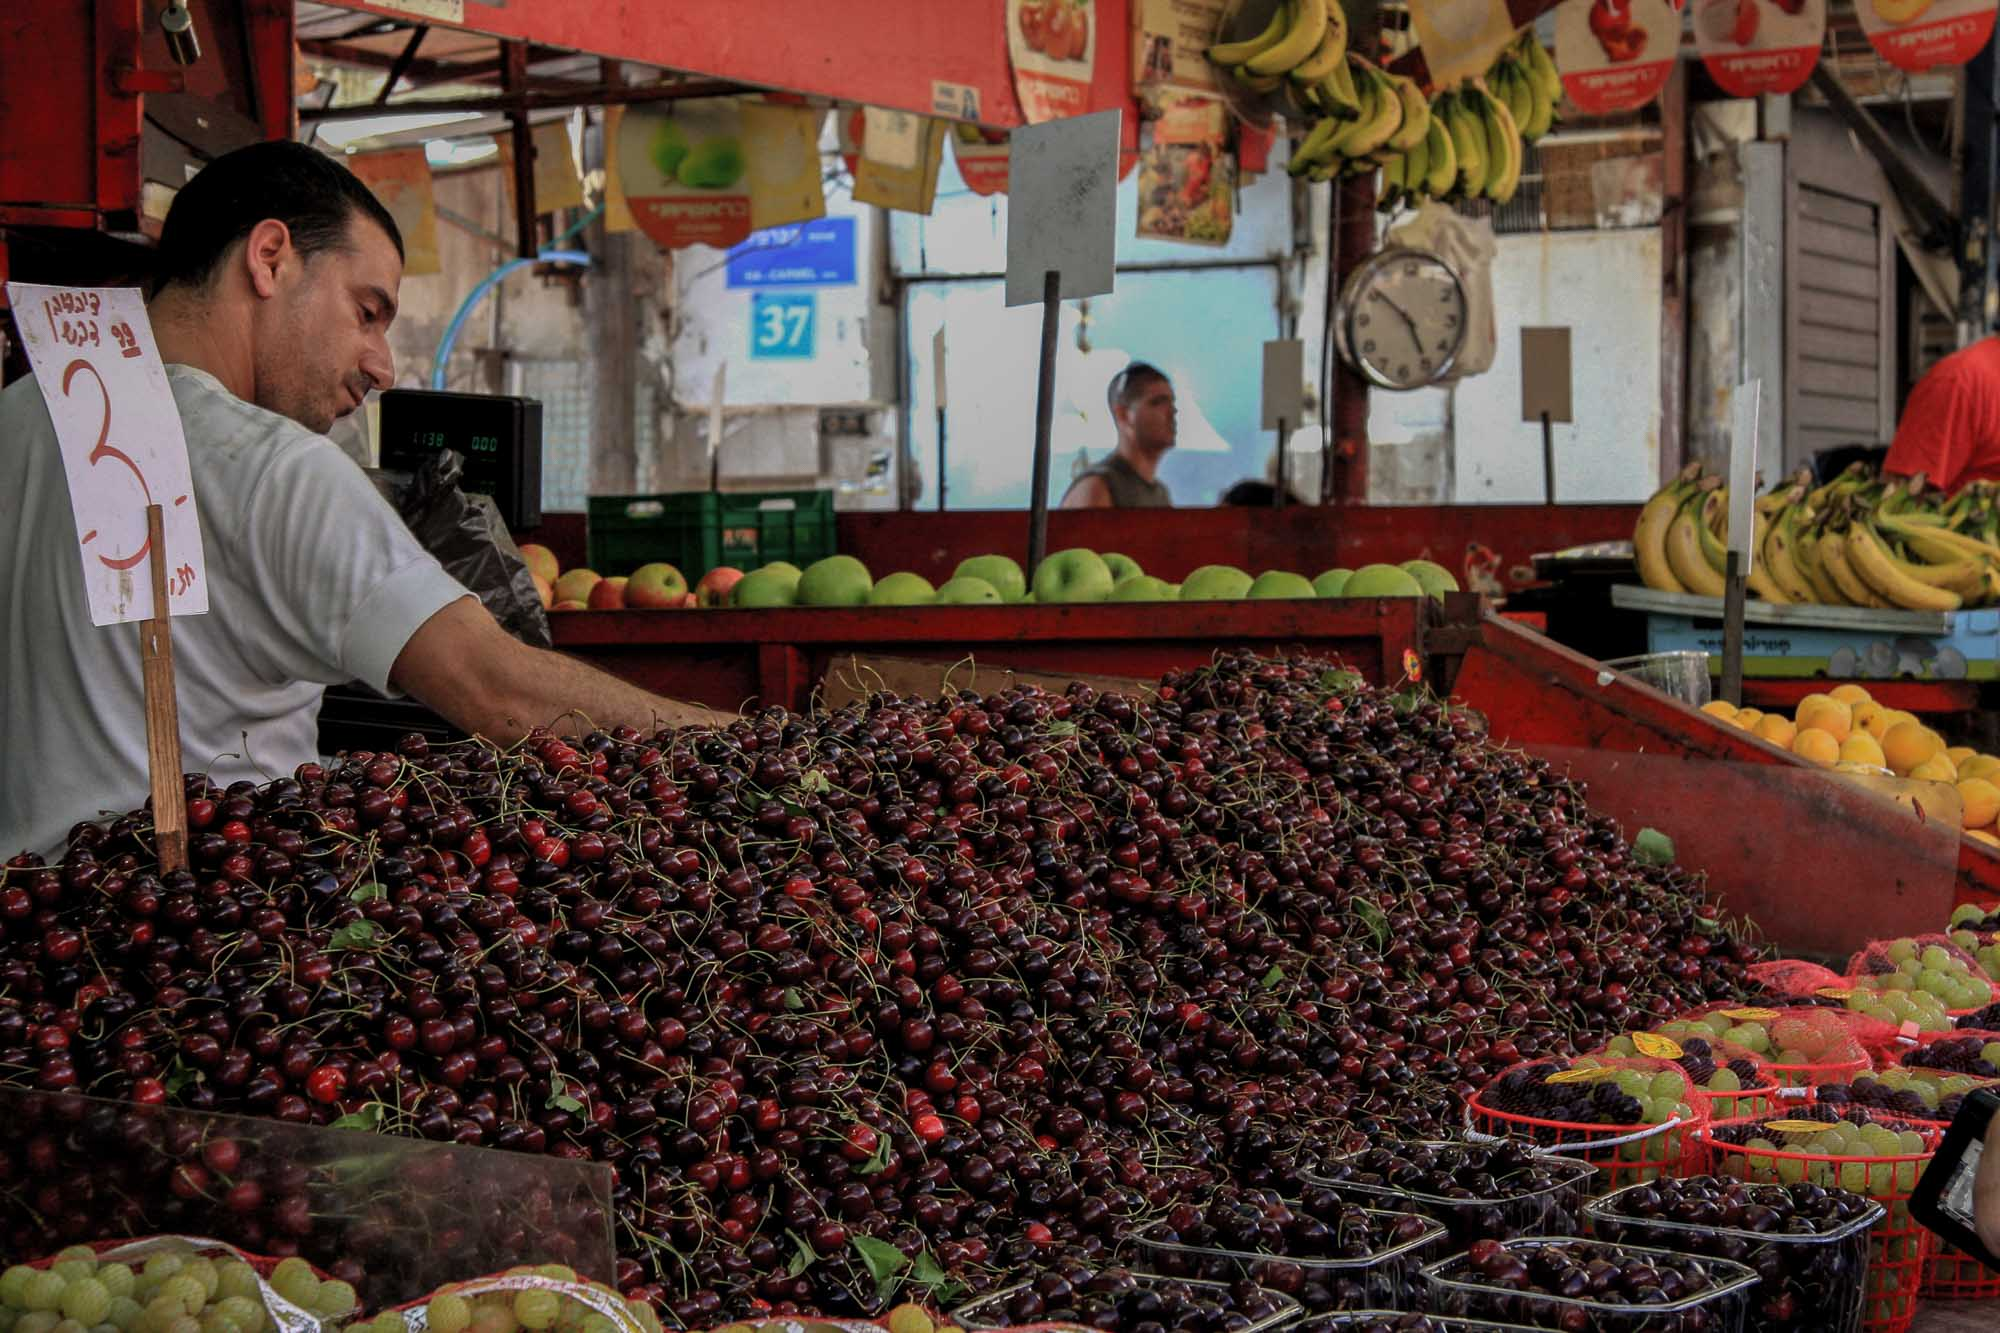 Cherries in Carmel Market - Tel Aviv